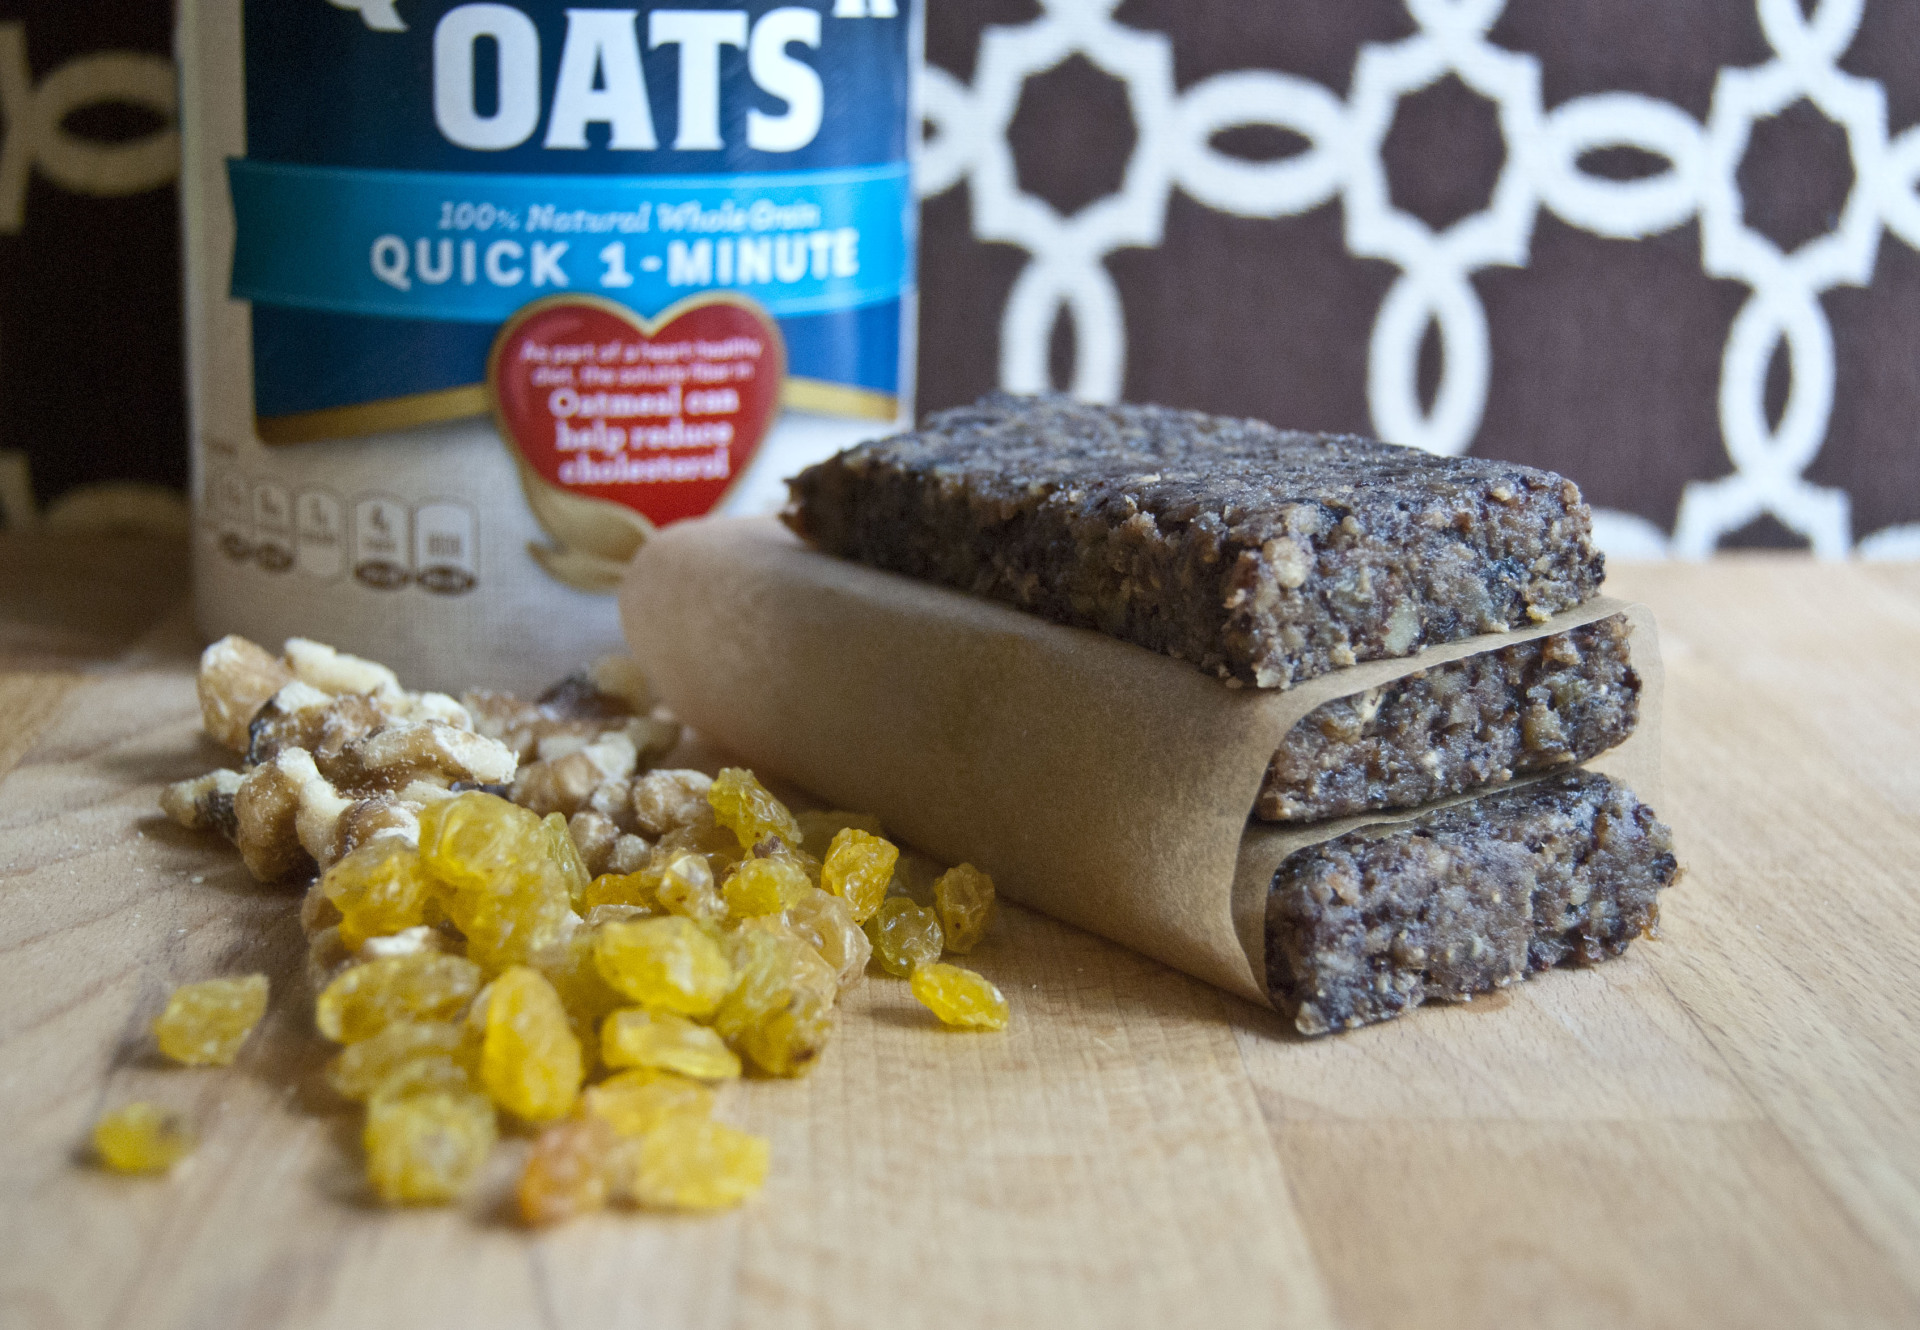 Oatmeal Cookie Energy Bars